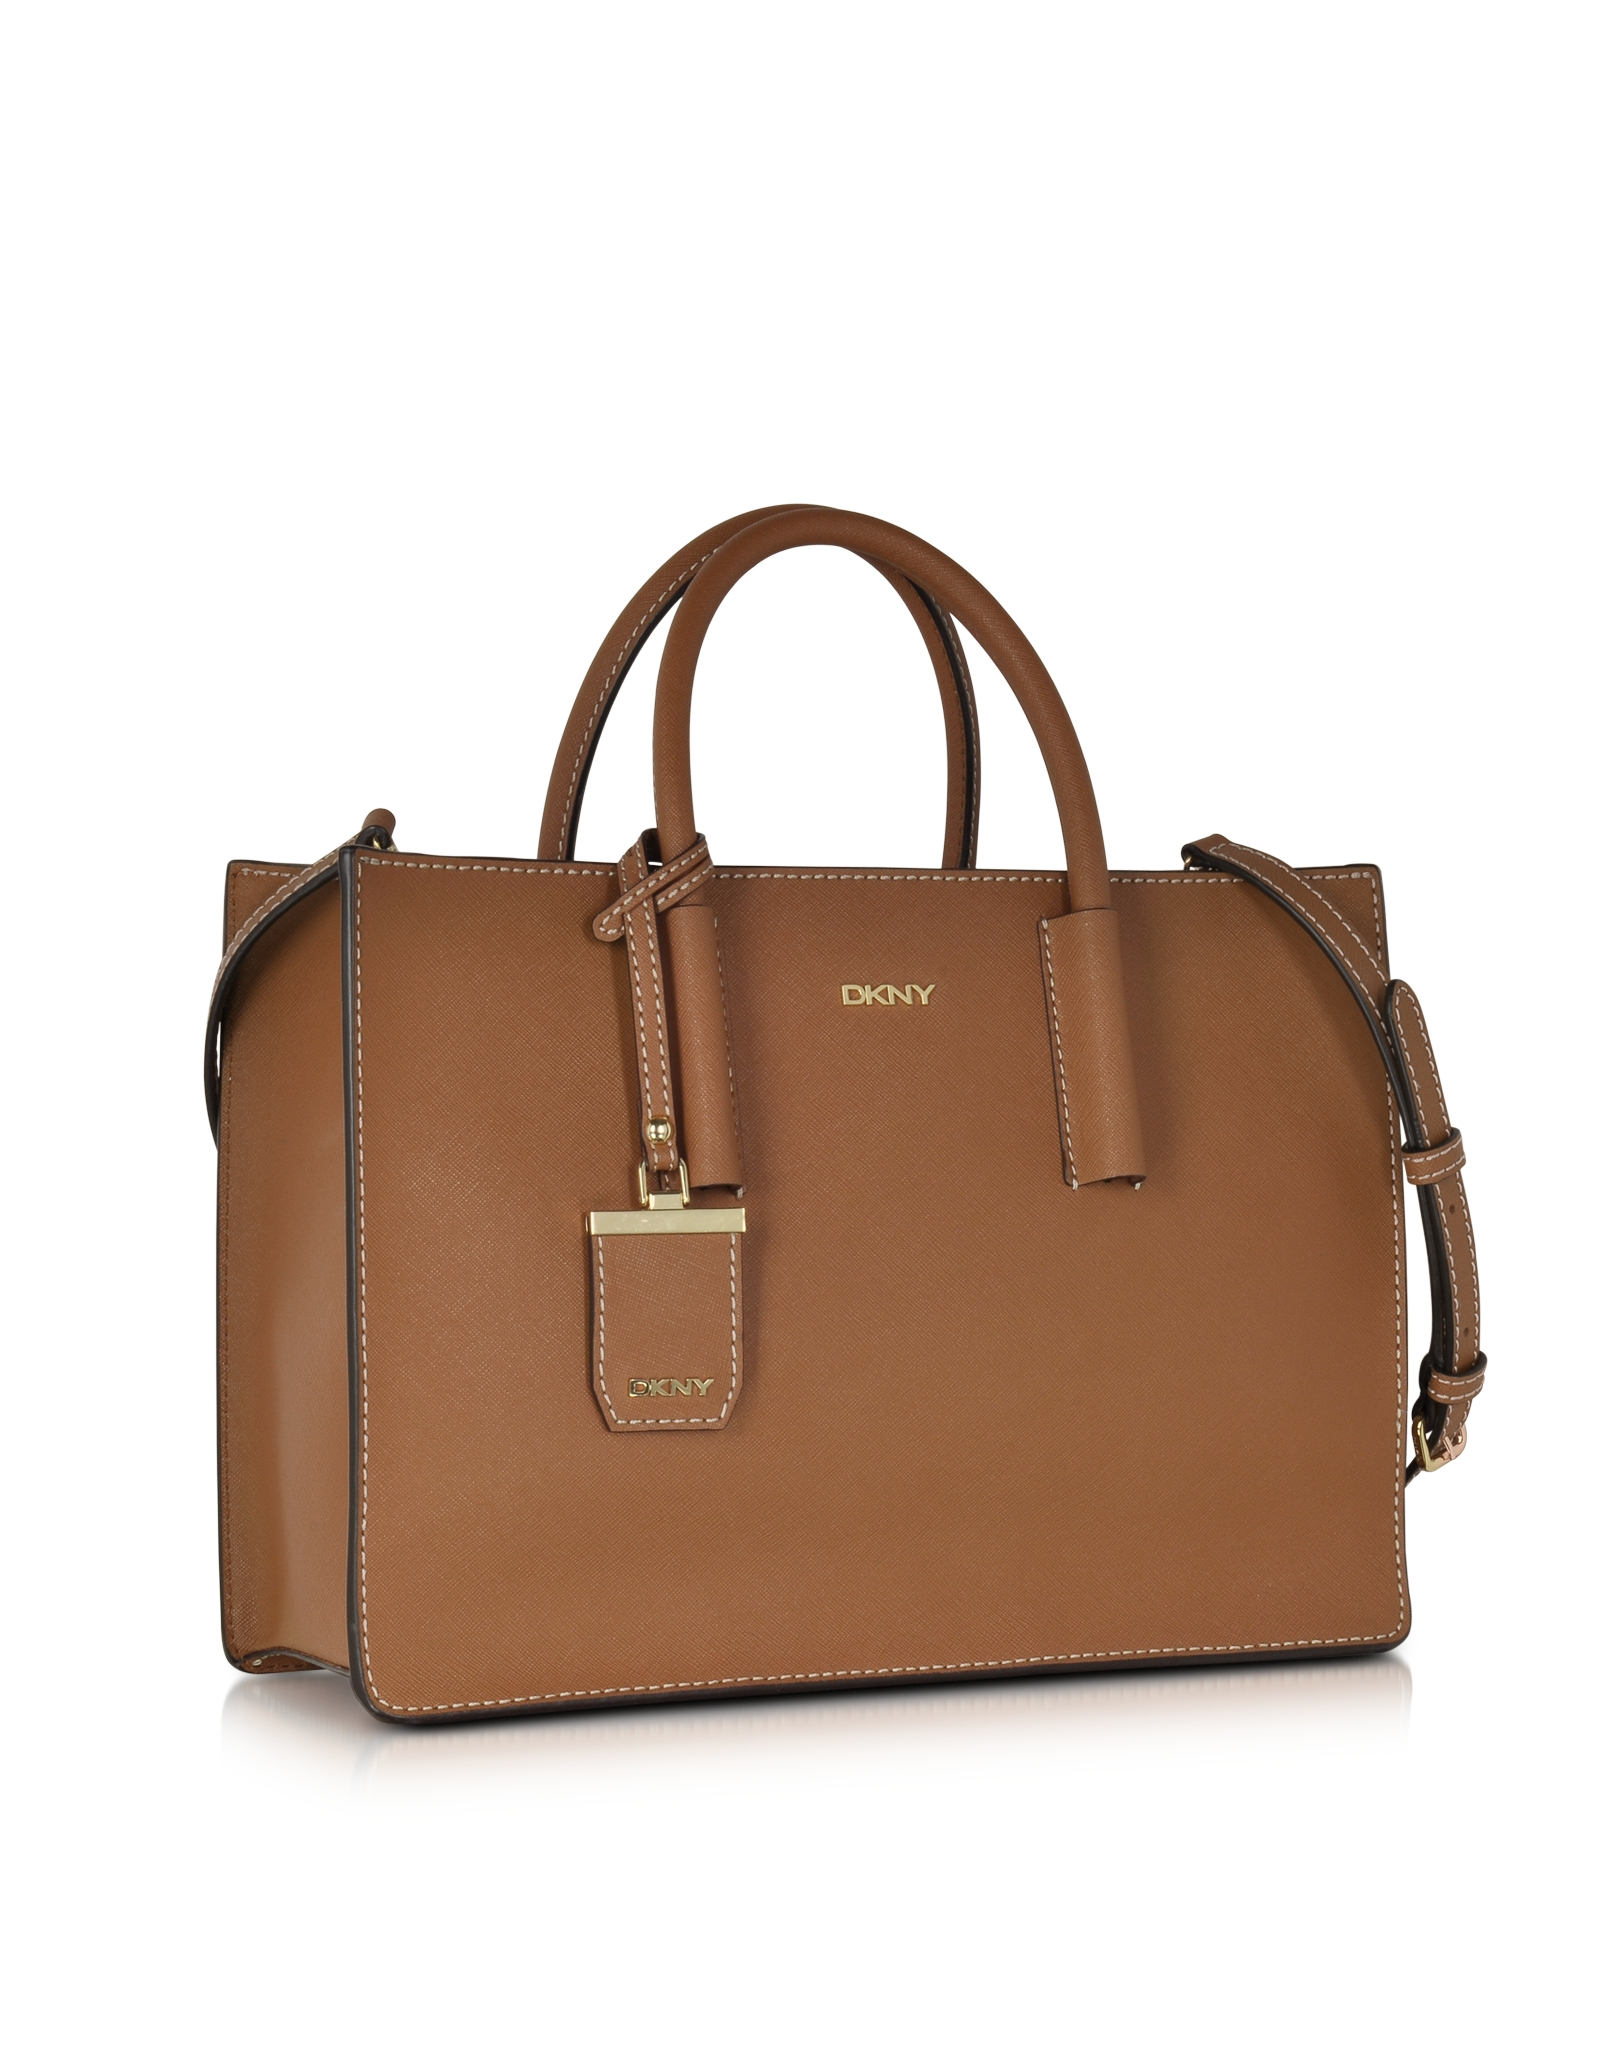 c6164923e3 Dkny Handbags Bryant Park Tan Saffiano Leather Tote Bag - Handbag ...